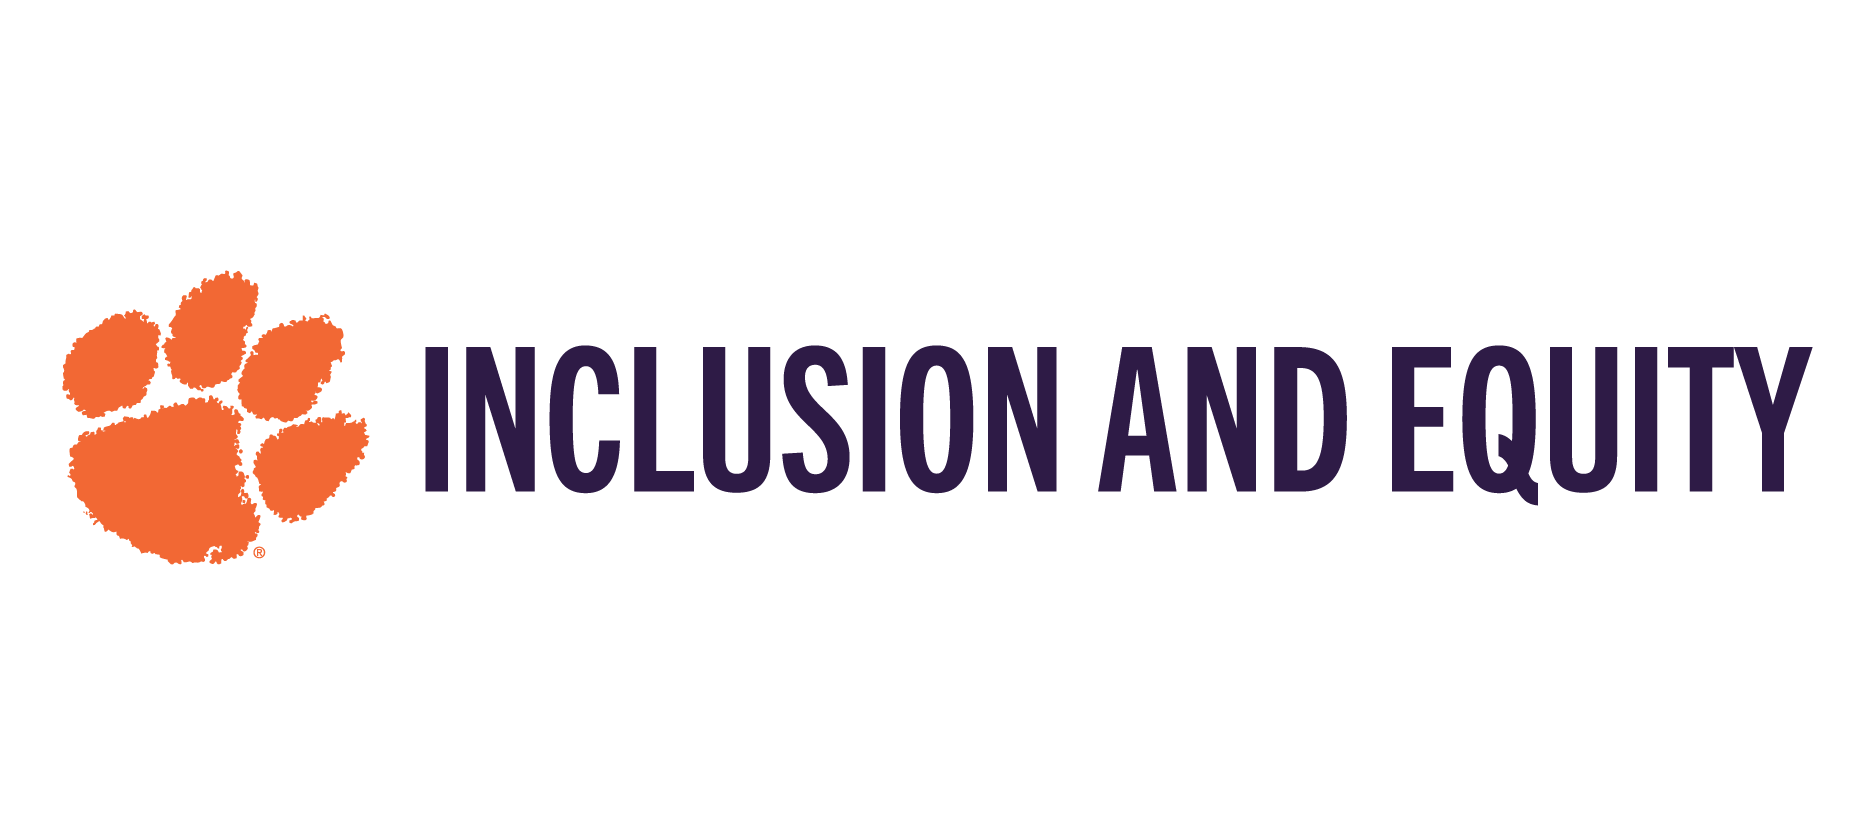 Clemson University: Inclusion and Equity Logo